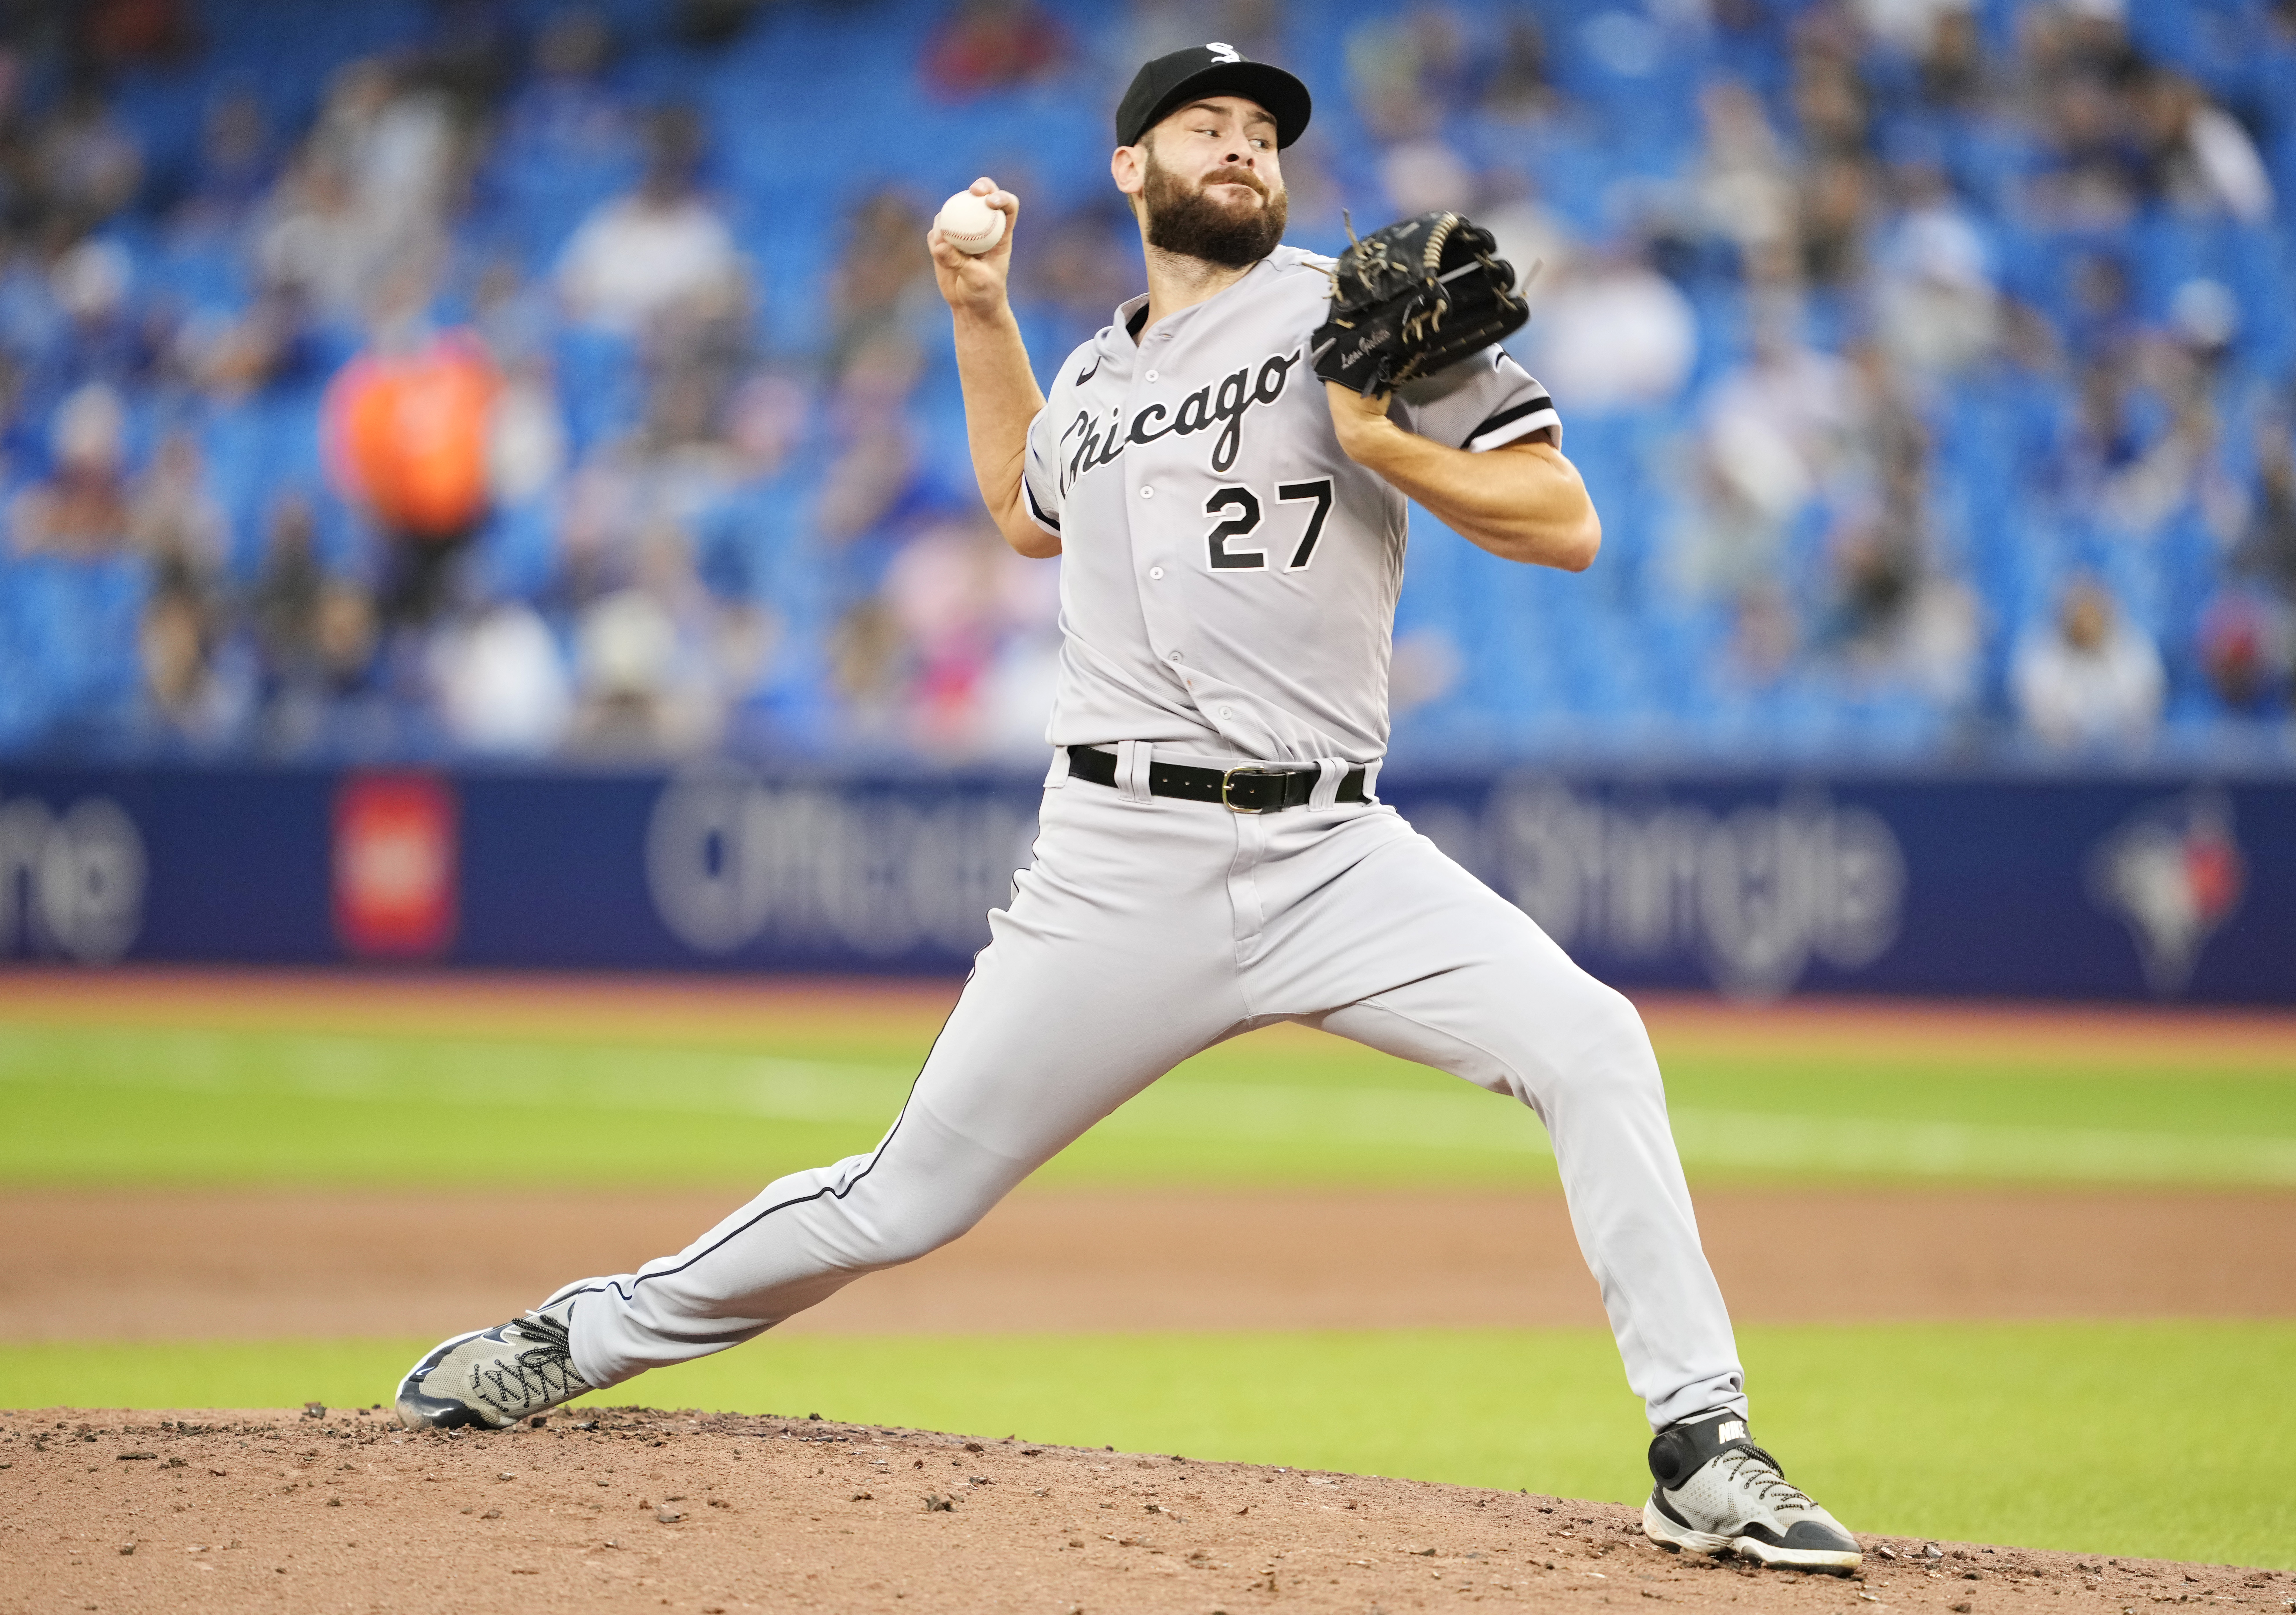 White Sox starter Lucas Giolito delivers during Wednesday's loss to the Blue Jays.